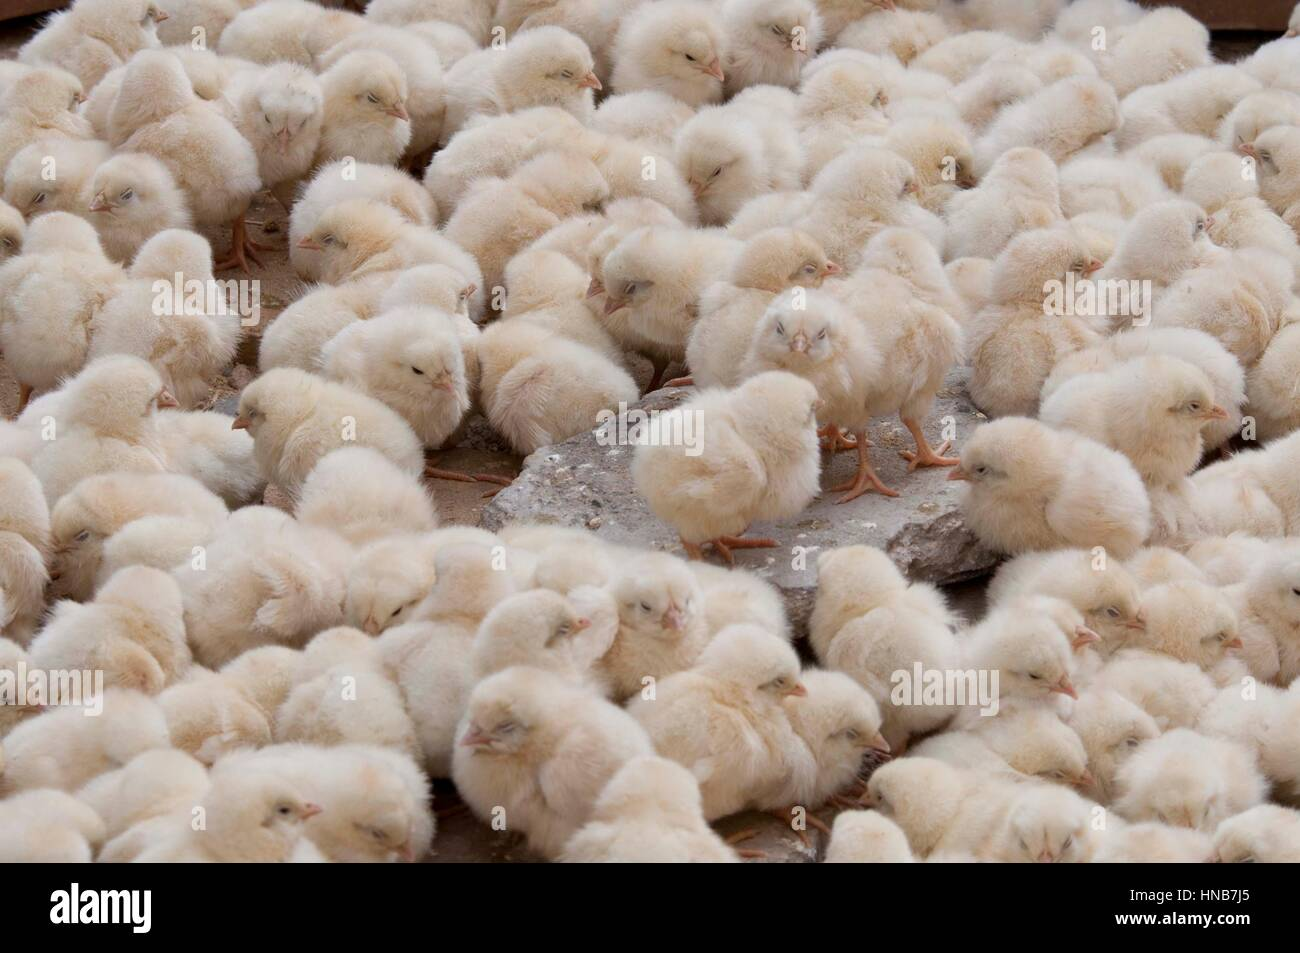 a lot of chicks on a market Mardin Turkey - Stock Image